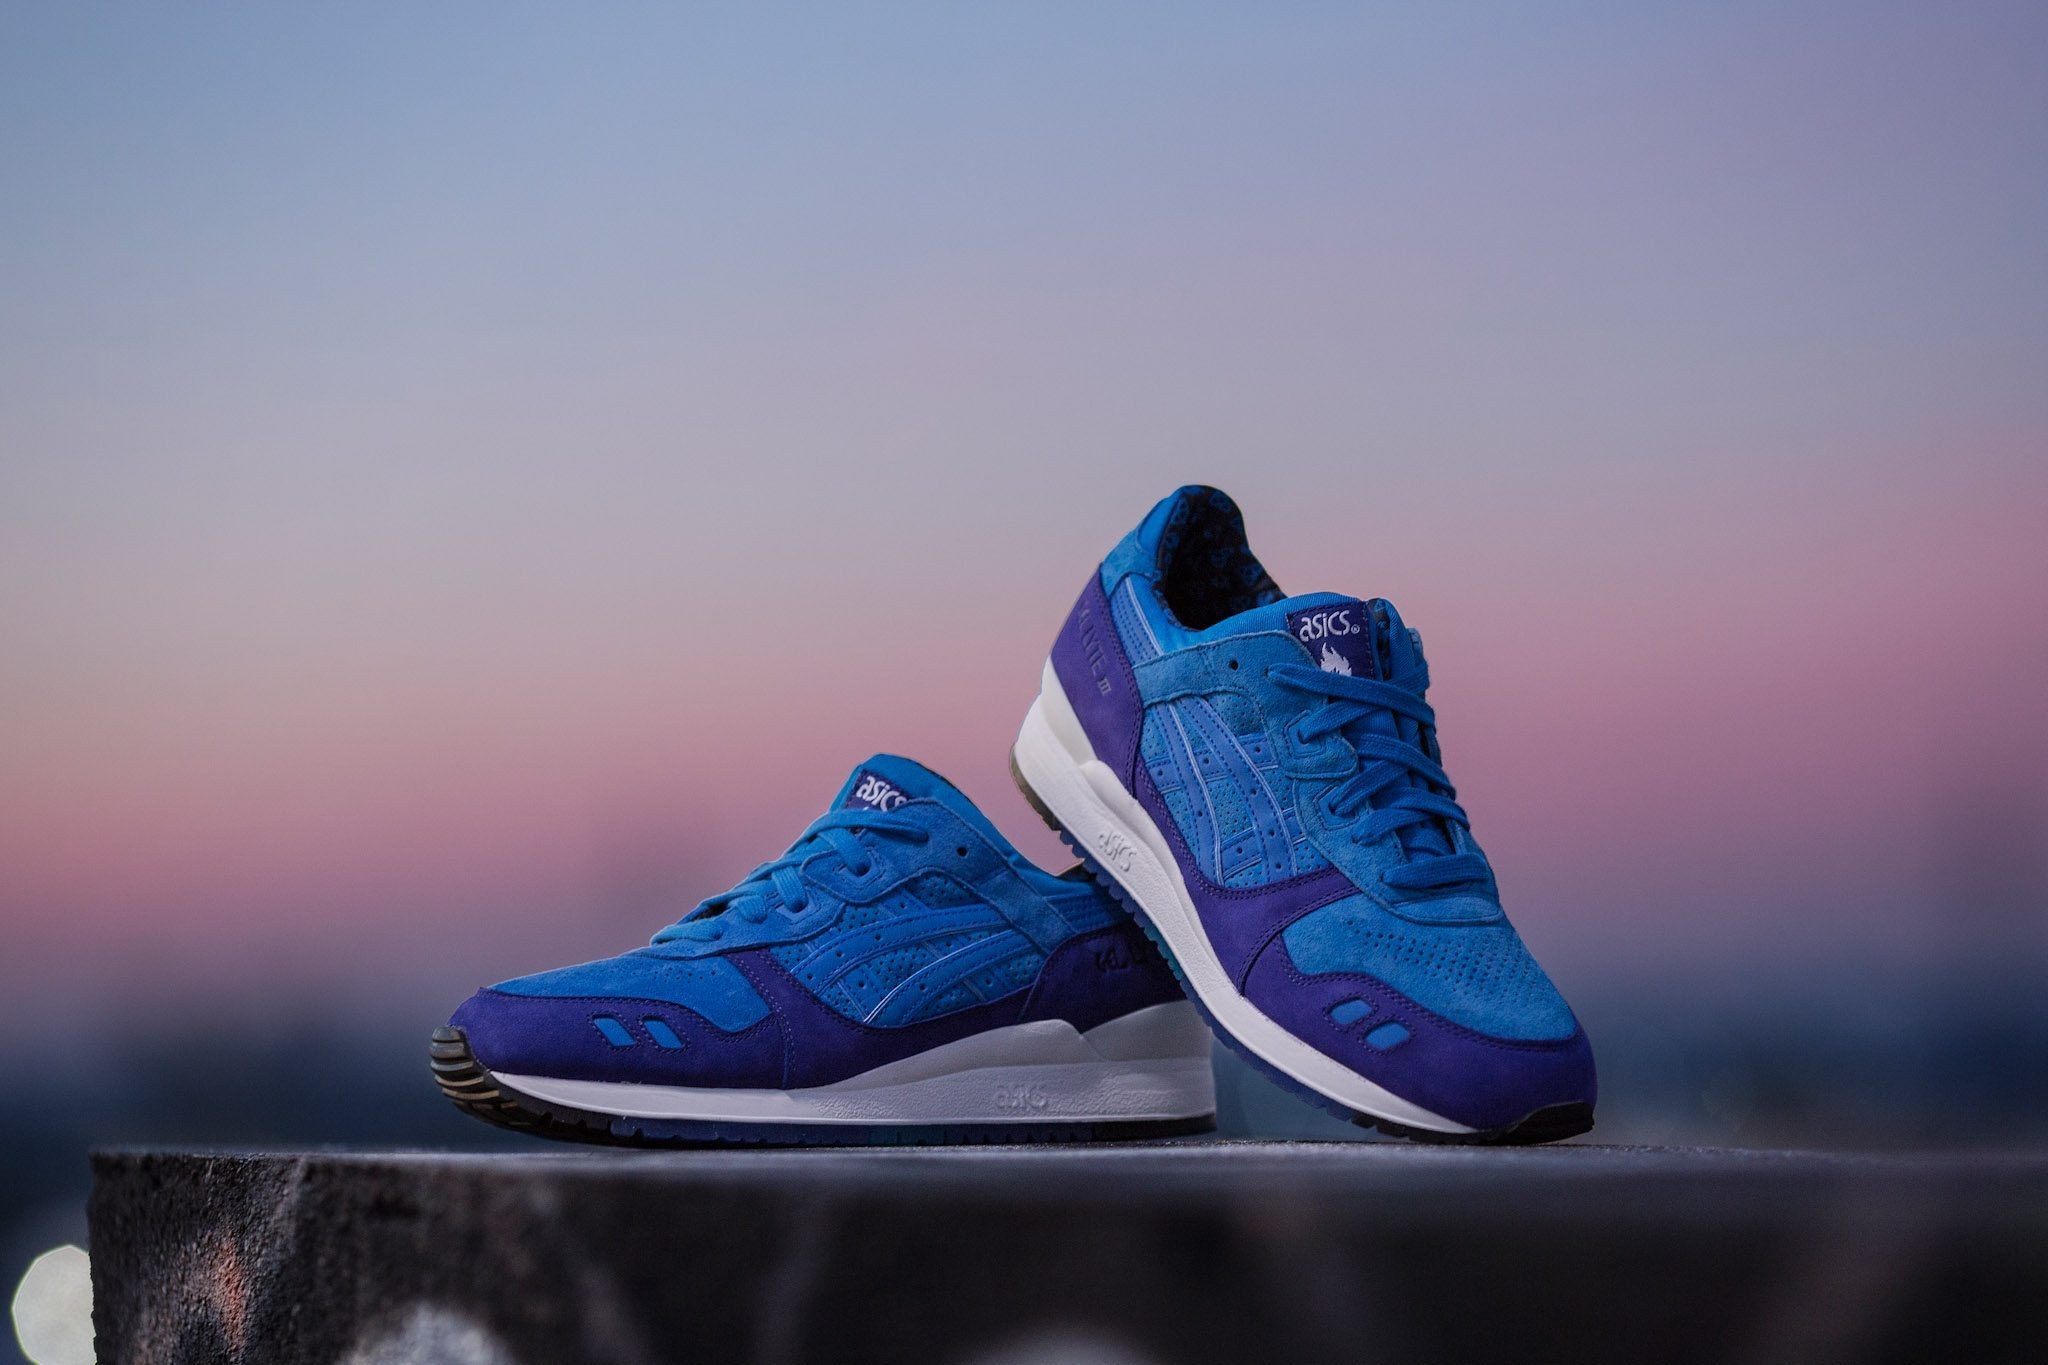 HANON x ASICS Gel Lyte III Light Night 2